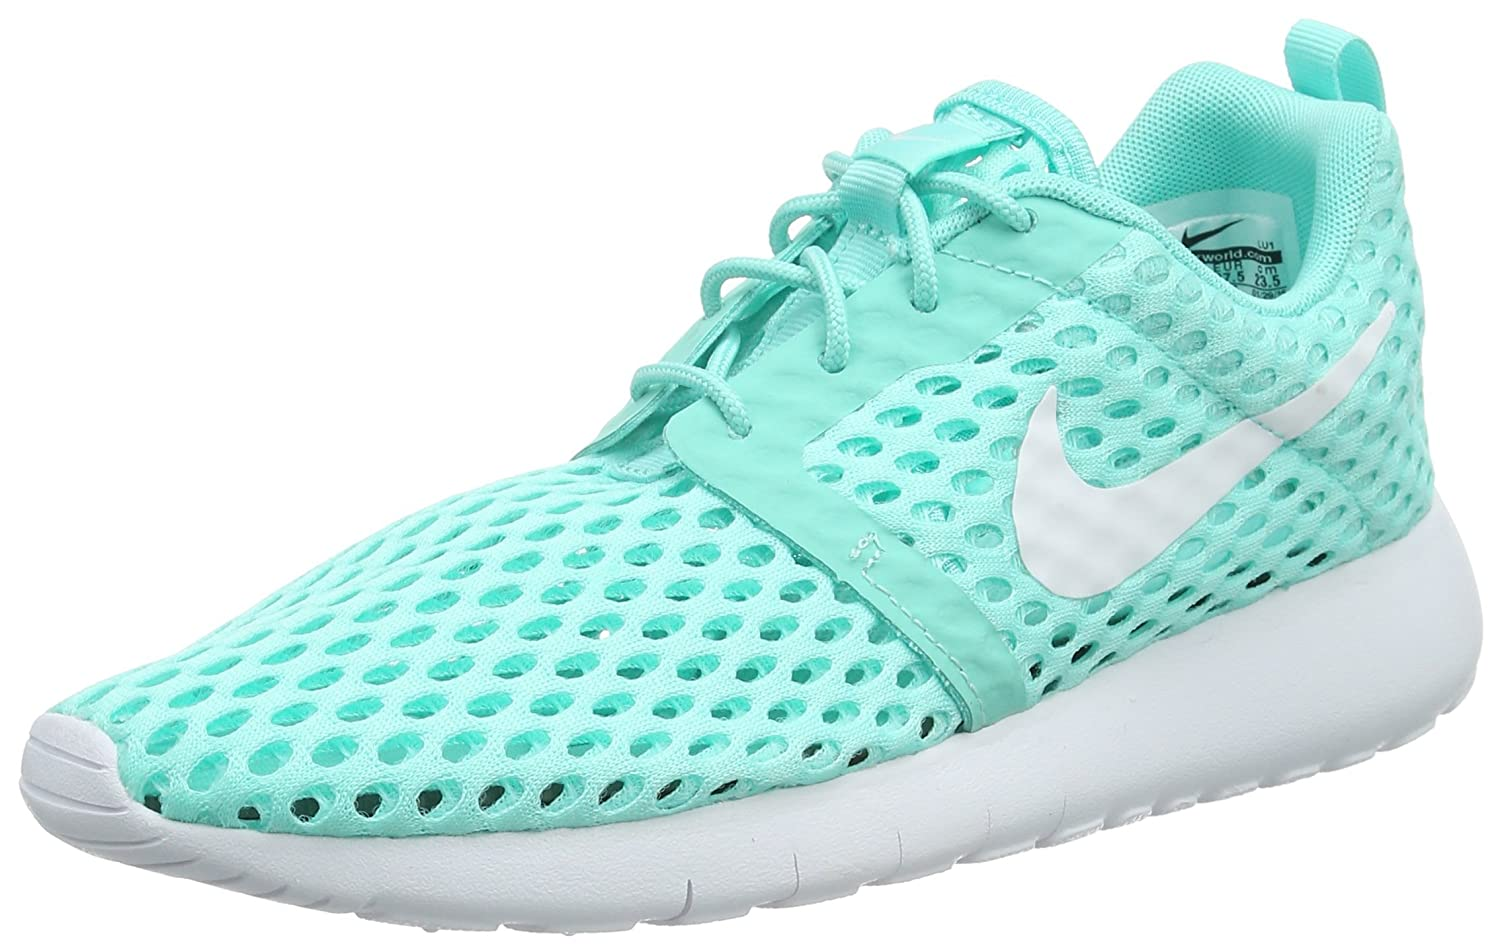 d175a3b0cafc4 nike roshe one flight weight amazon